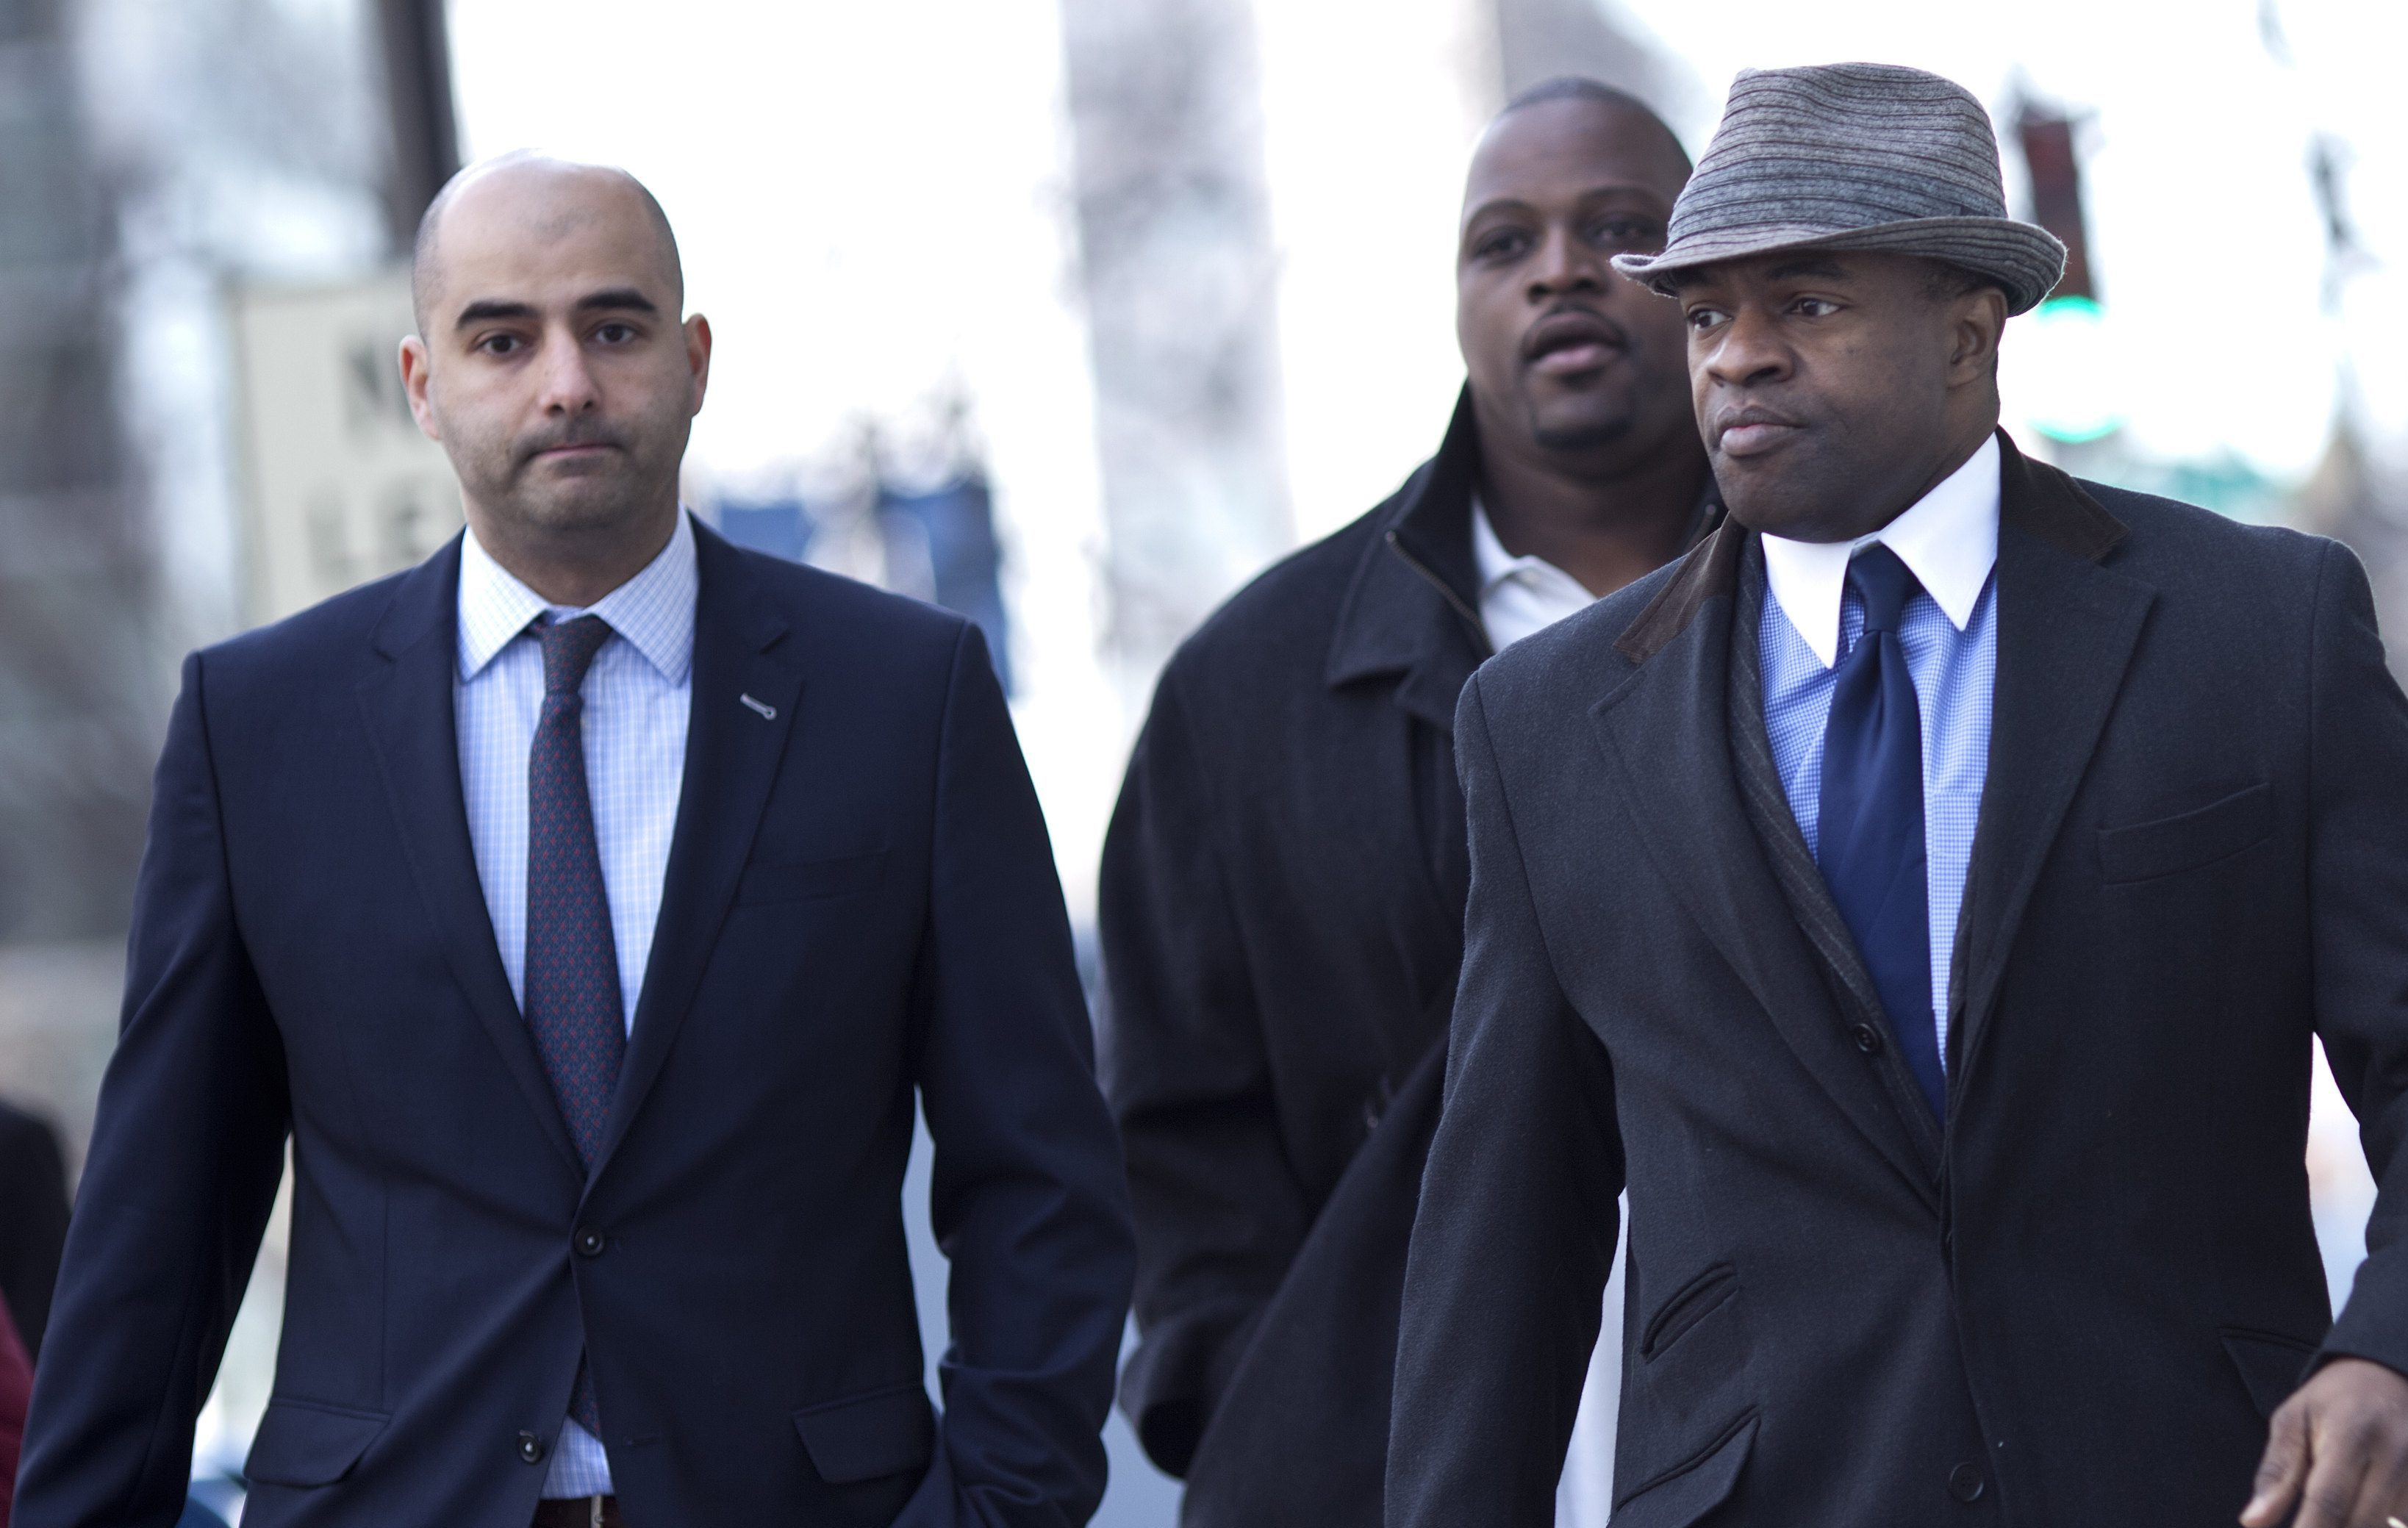 WASHINGTON - MARCH 4: DeMaurice Smith (R), NFLPA executive director, arrives with NFL Players Association Spokesman George Atallah (L) and Kansas City Chiefs player Brian Waters (C) for an extra day of negotiations at the Federal Mediation and Conciliation Service building March 4, 2011 in Washington, DC. Representatives from the National Football League (NFL) and National Football League Players' Association (NFLPA) continue to negotiate a collective bargaining agreement between players and owners during a 24 hour extension in negotiations. (Photo by Brendan Smialowski/Getty Images)